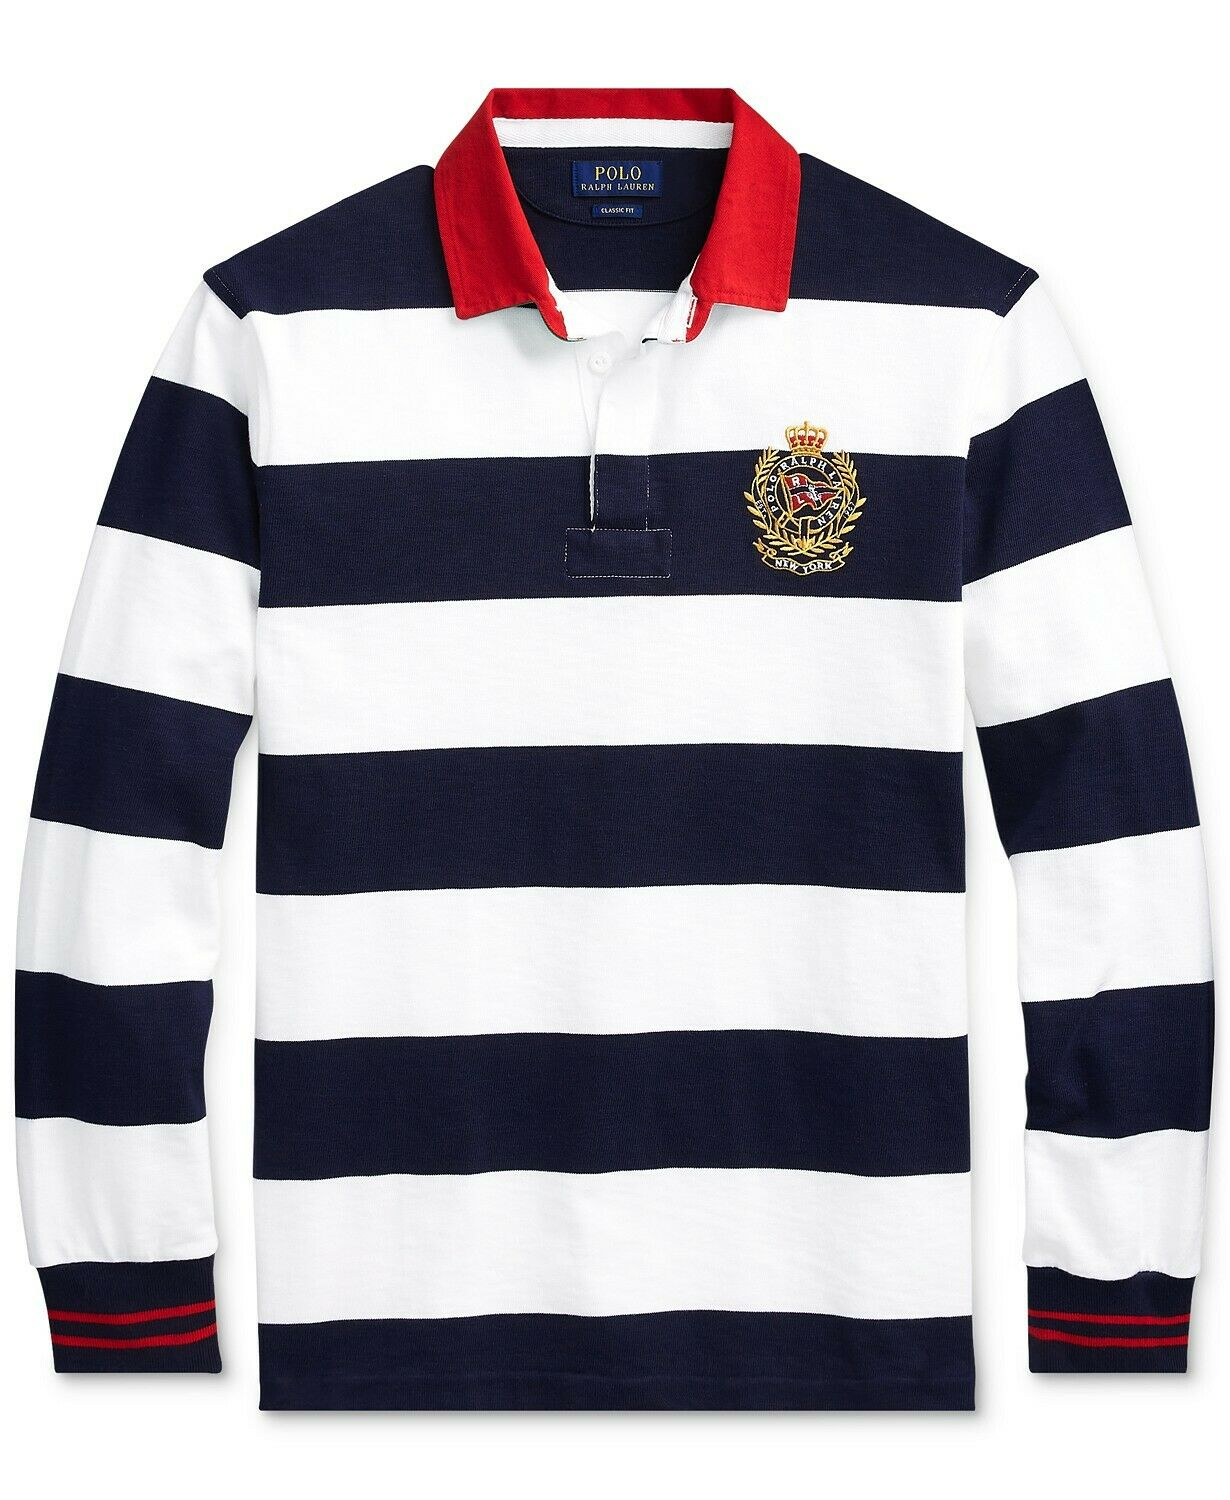 5XBPolo Ralph Lauren Men's Stripe Iconic Rugby Classic Fit Polo Shirt